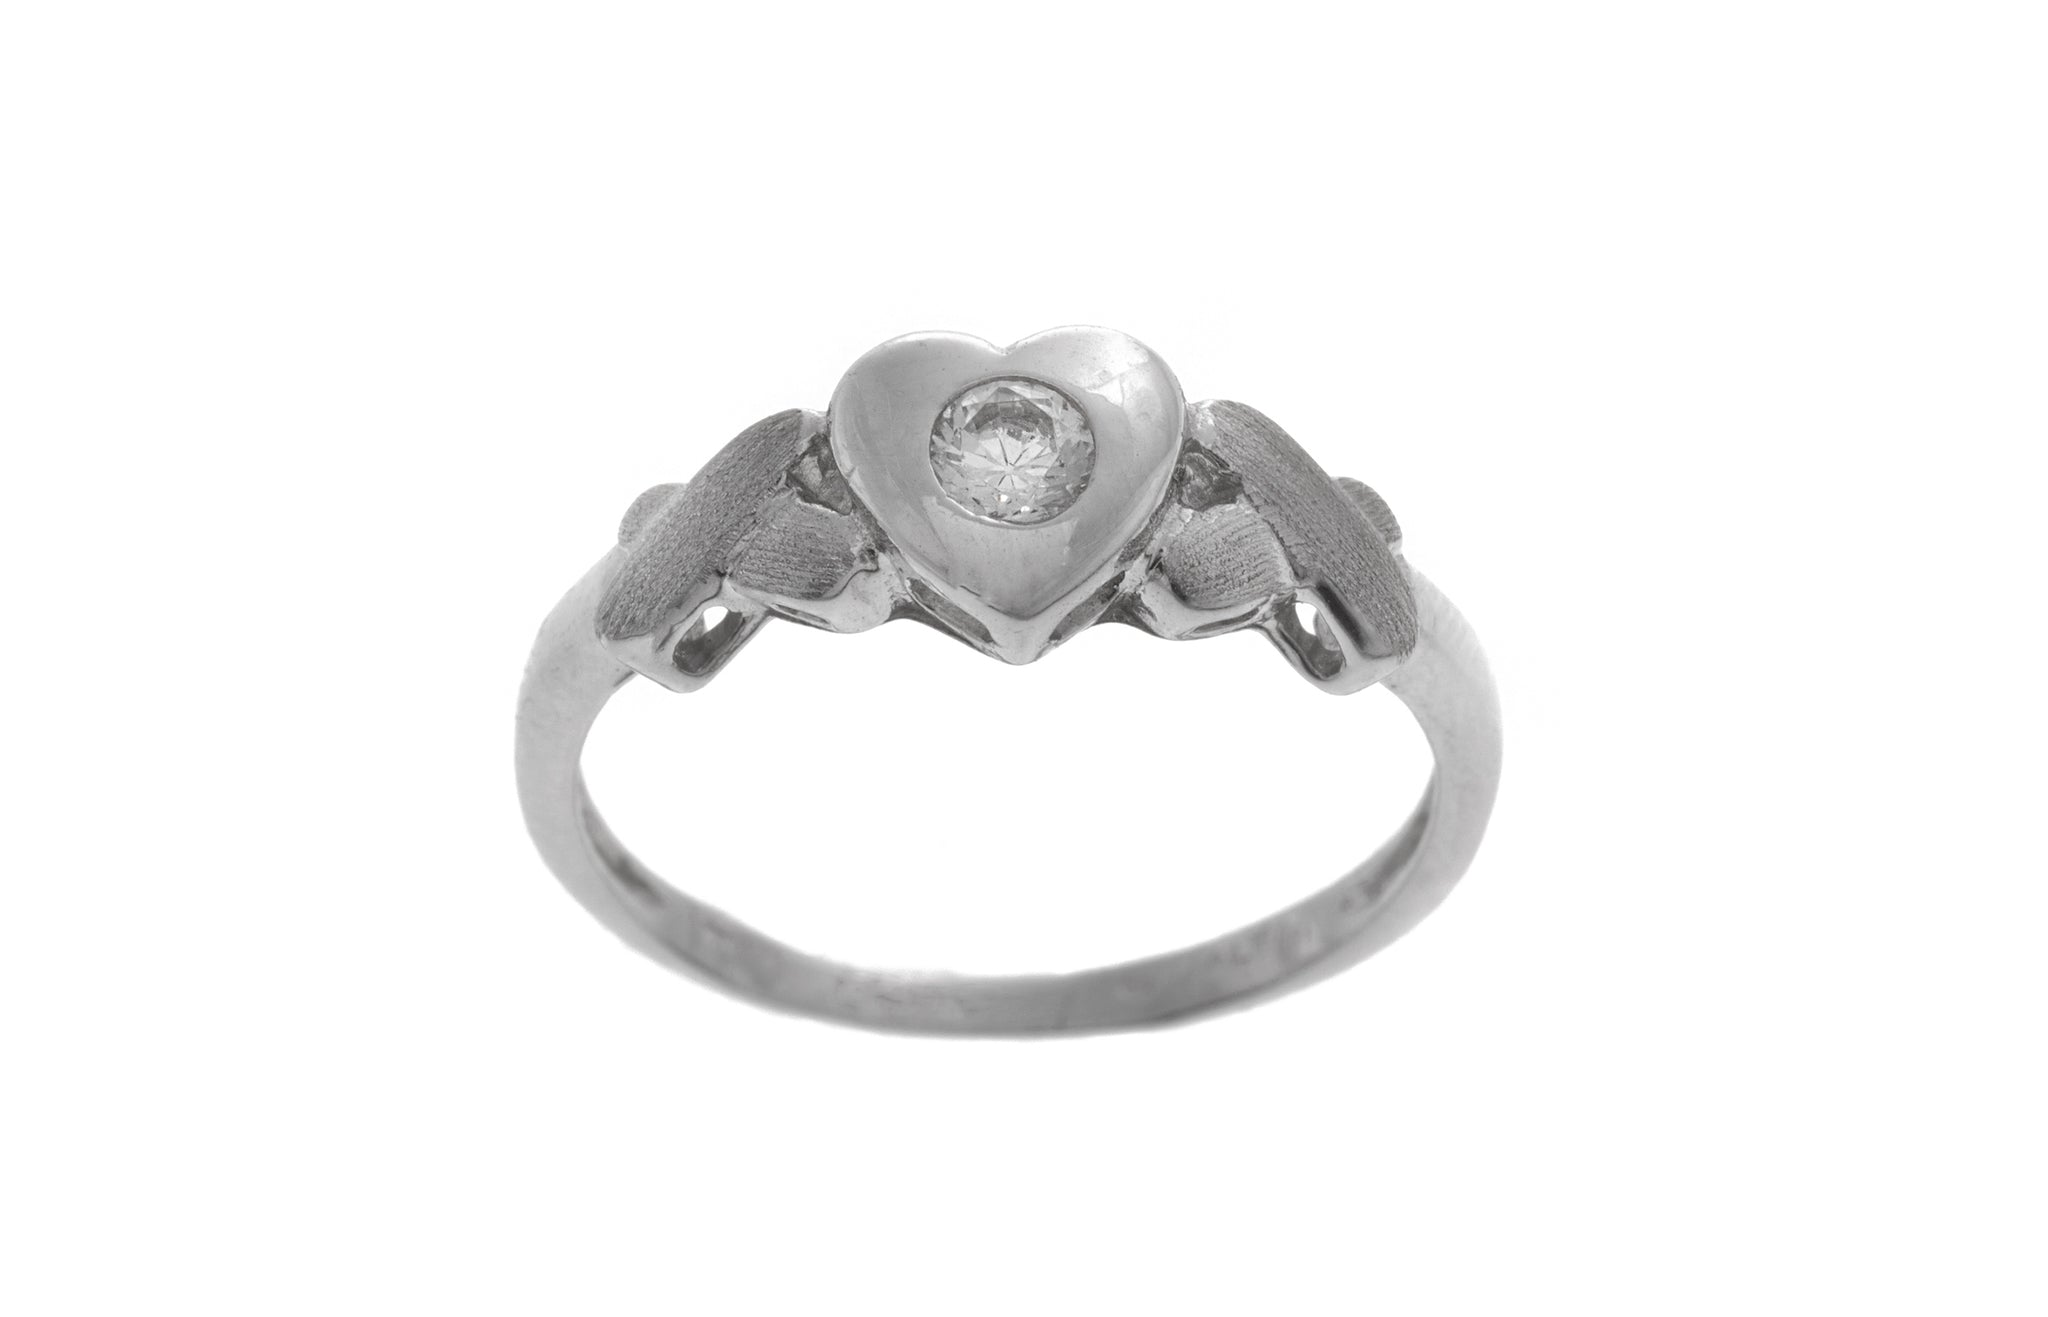 18ct White Gold 'Heart' Dress Ring set with Cubic Zirconias LR-2510